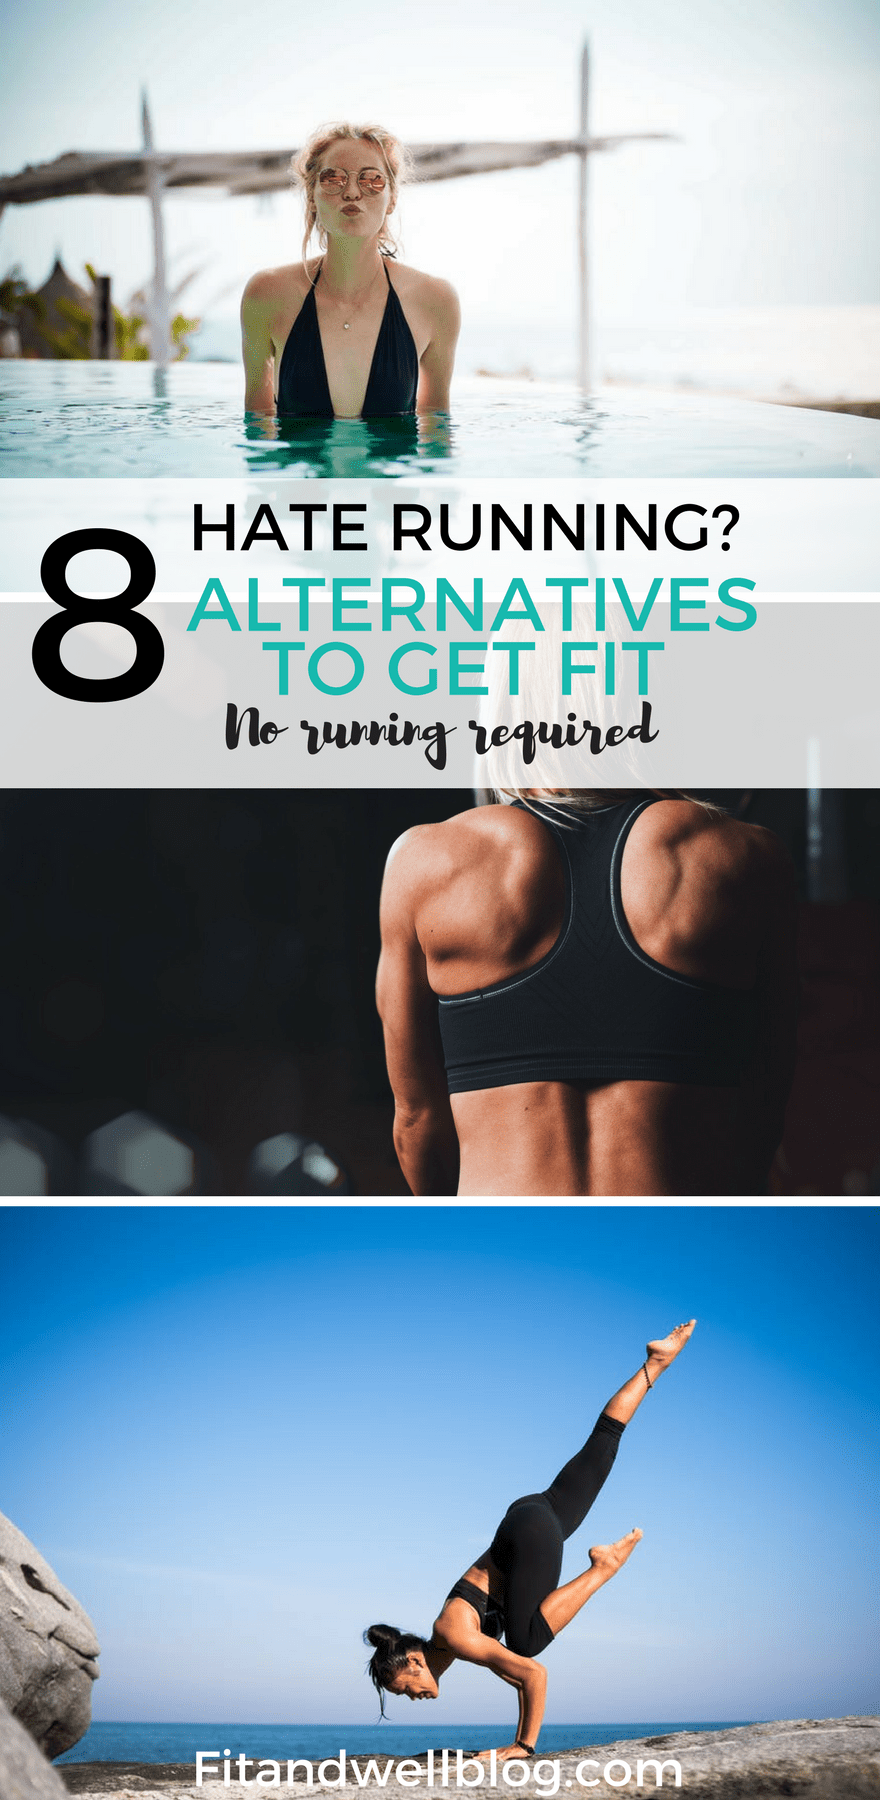 Hate running? 8 fun alternatives to get fit! No running required.